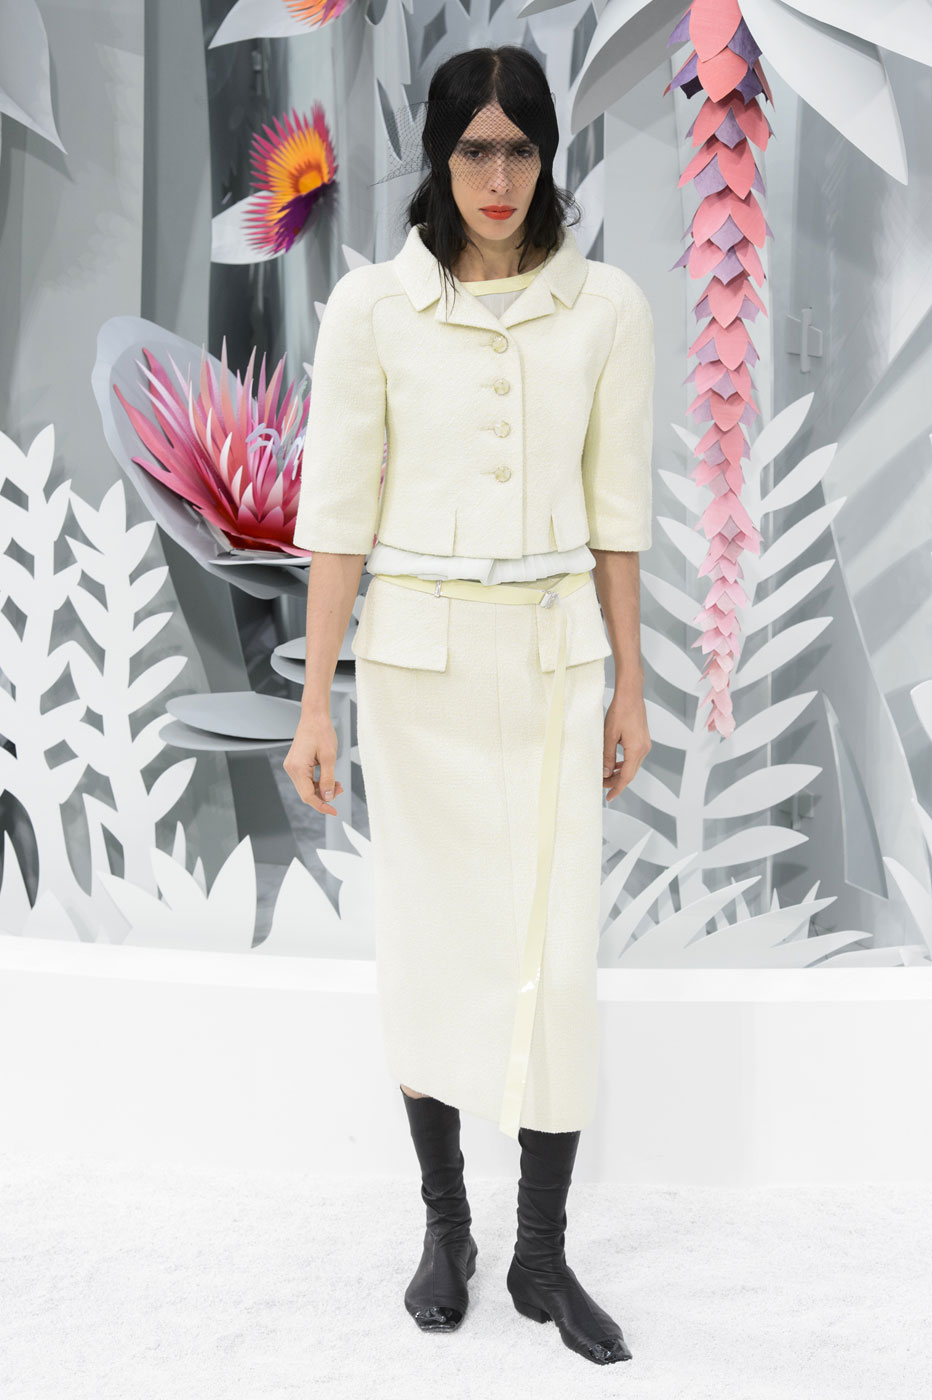 Chanel-fashion-runway-show-haute-couture-paris-spring-summer-2015-the-impression-044